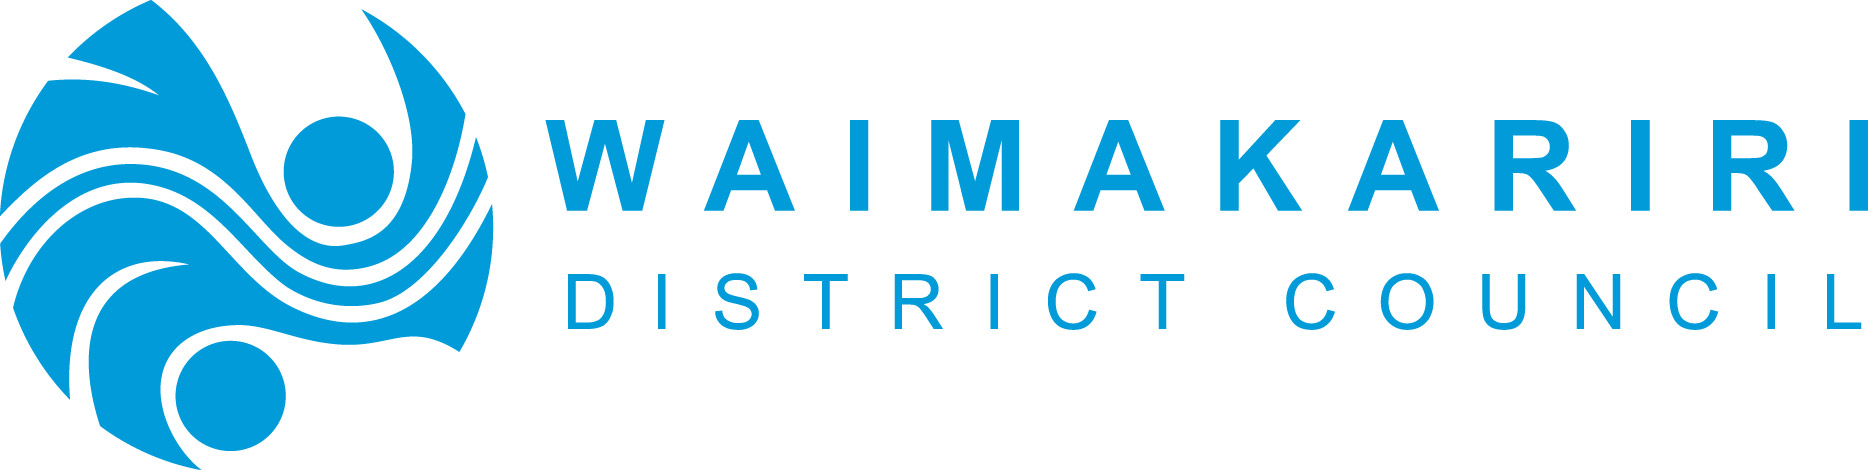 Waimakariri District Council logo